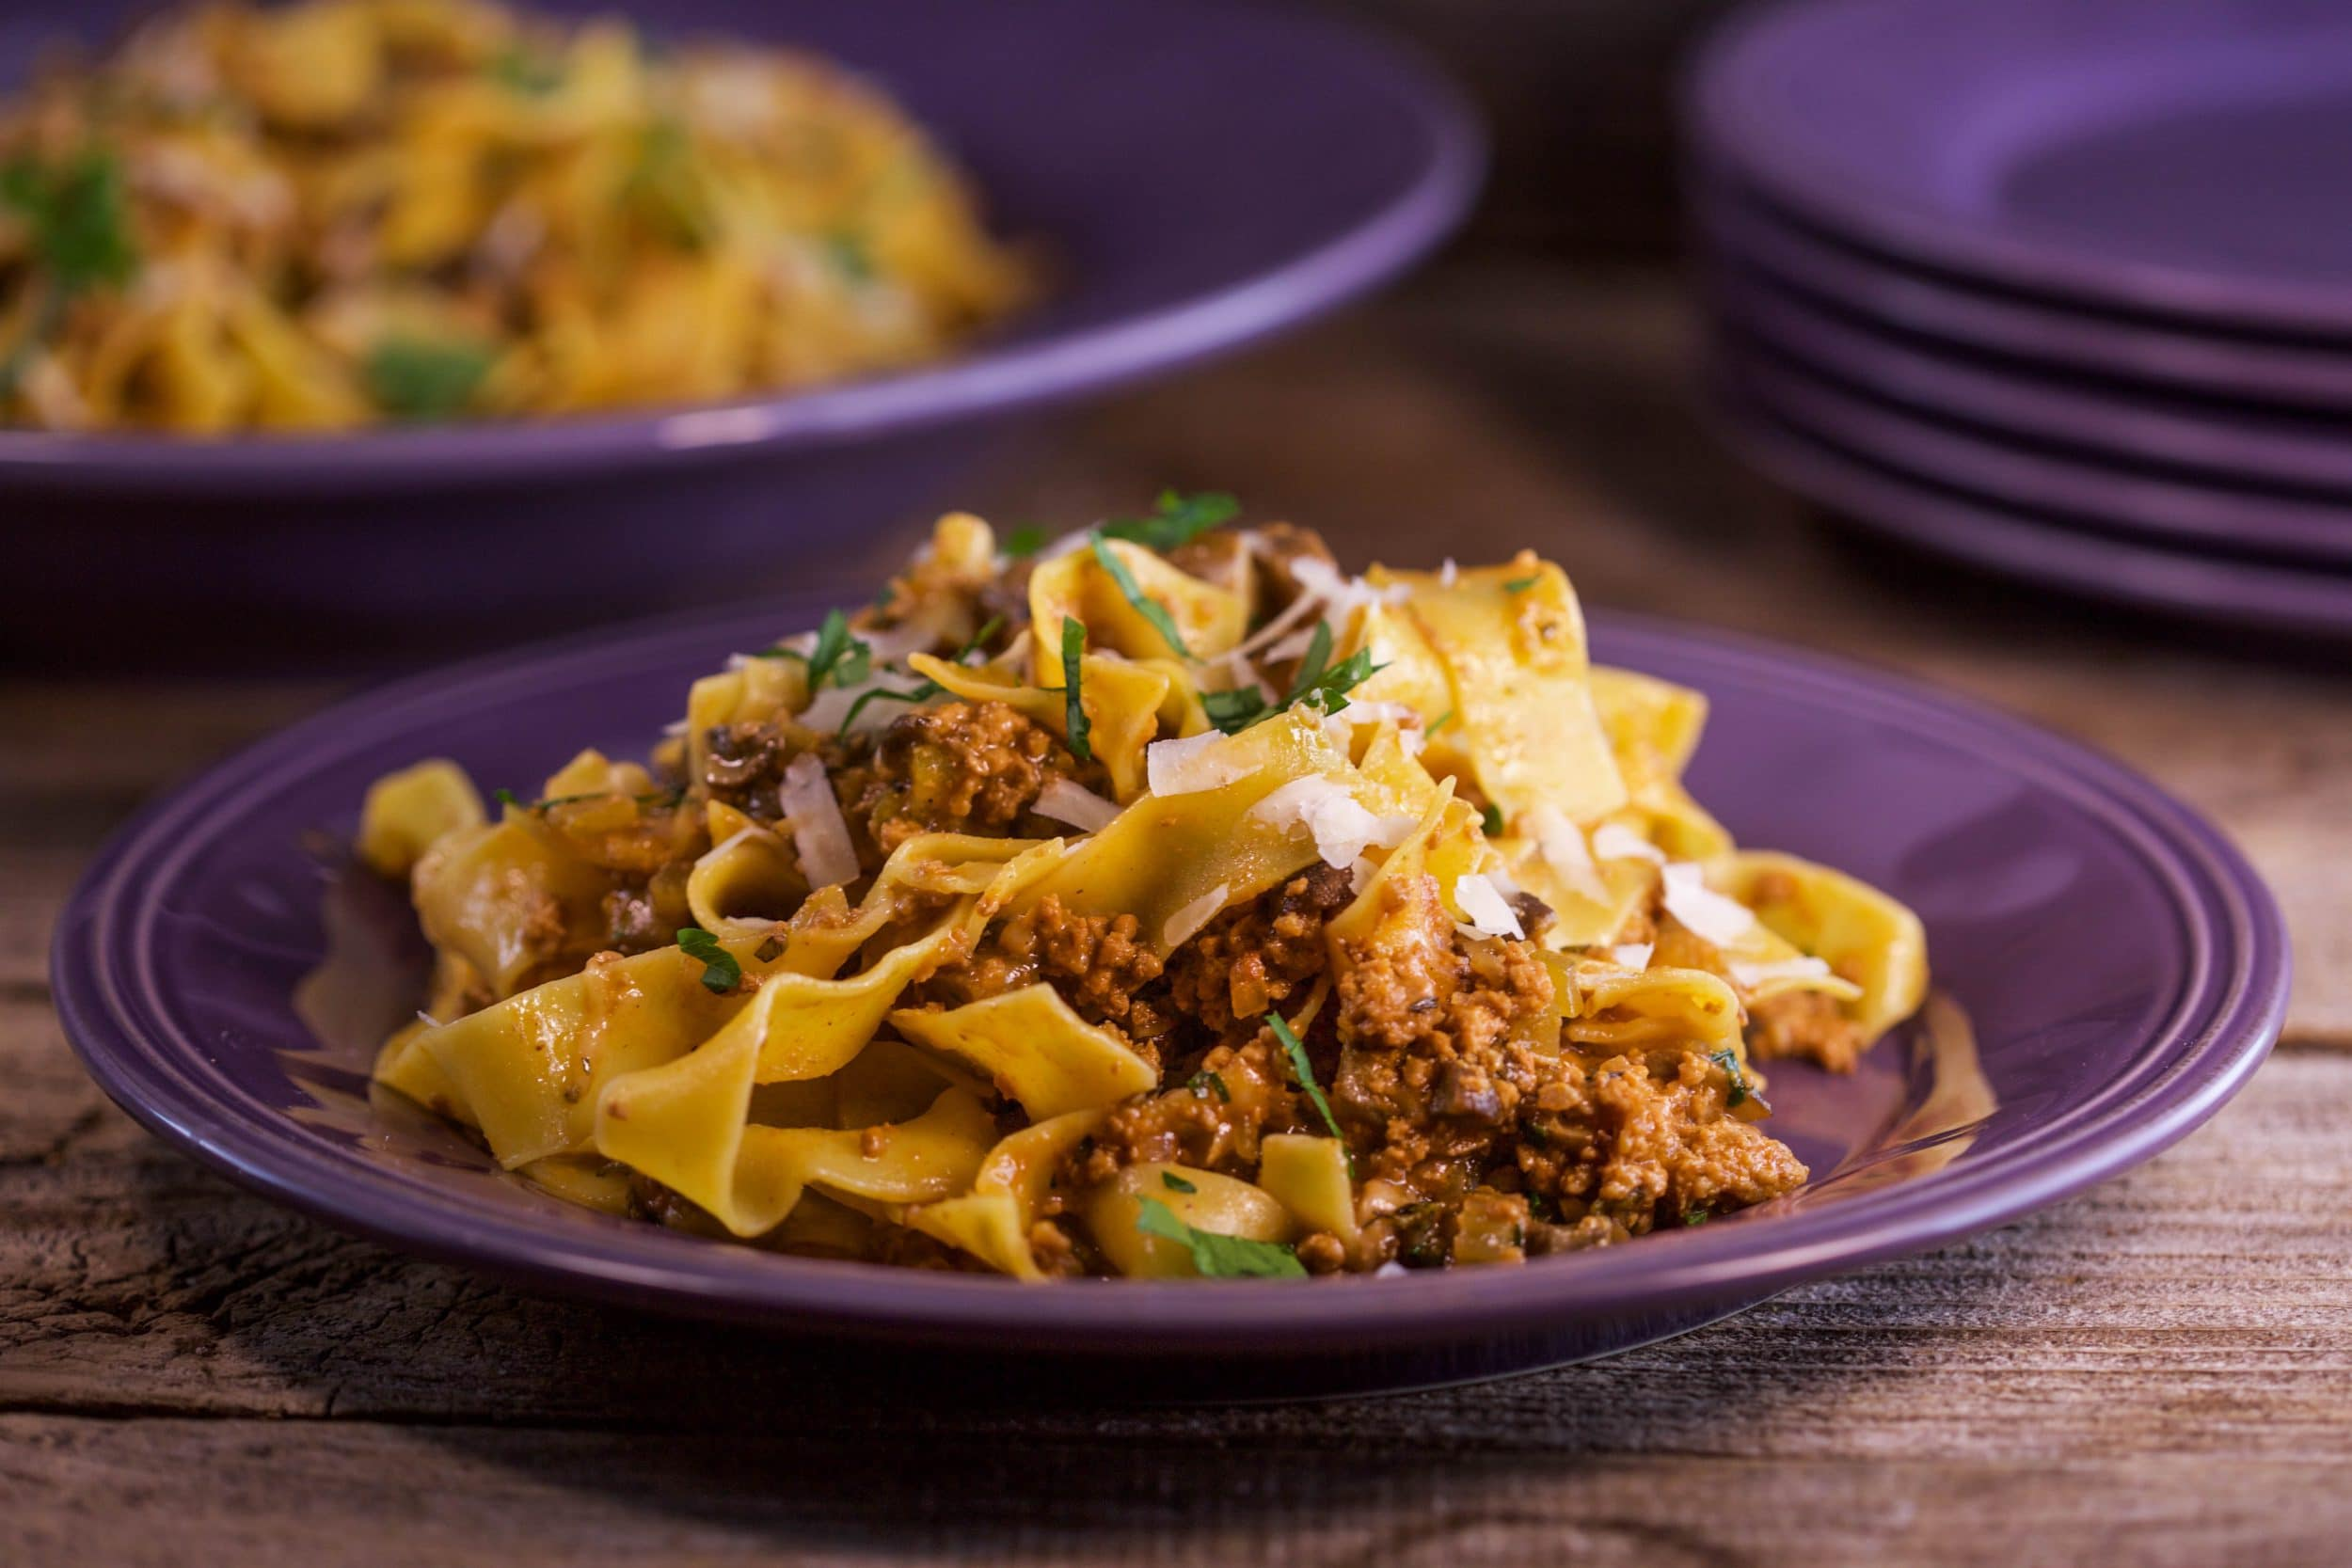 Veal or Chicken Ragu with Mushrooms and Marsala